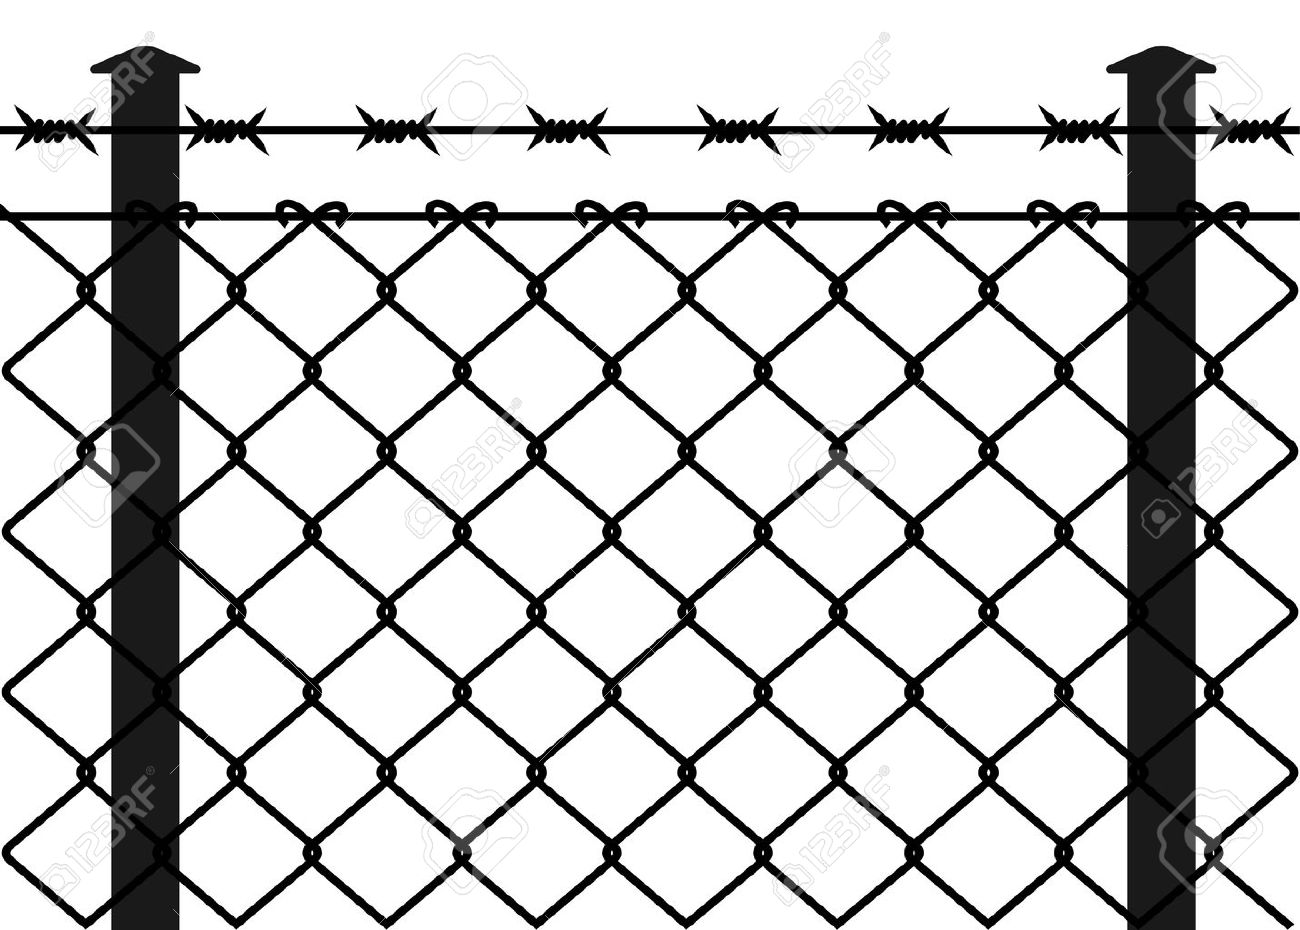 Barbed wire vector brush - Barbed Wire Vector Wire Fence With Barbed Wires Vector Illustration Illustration